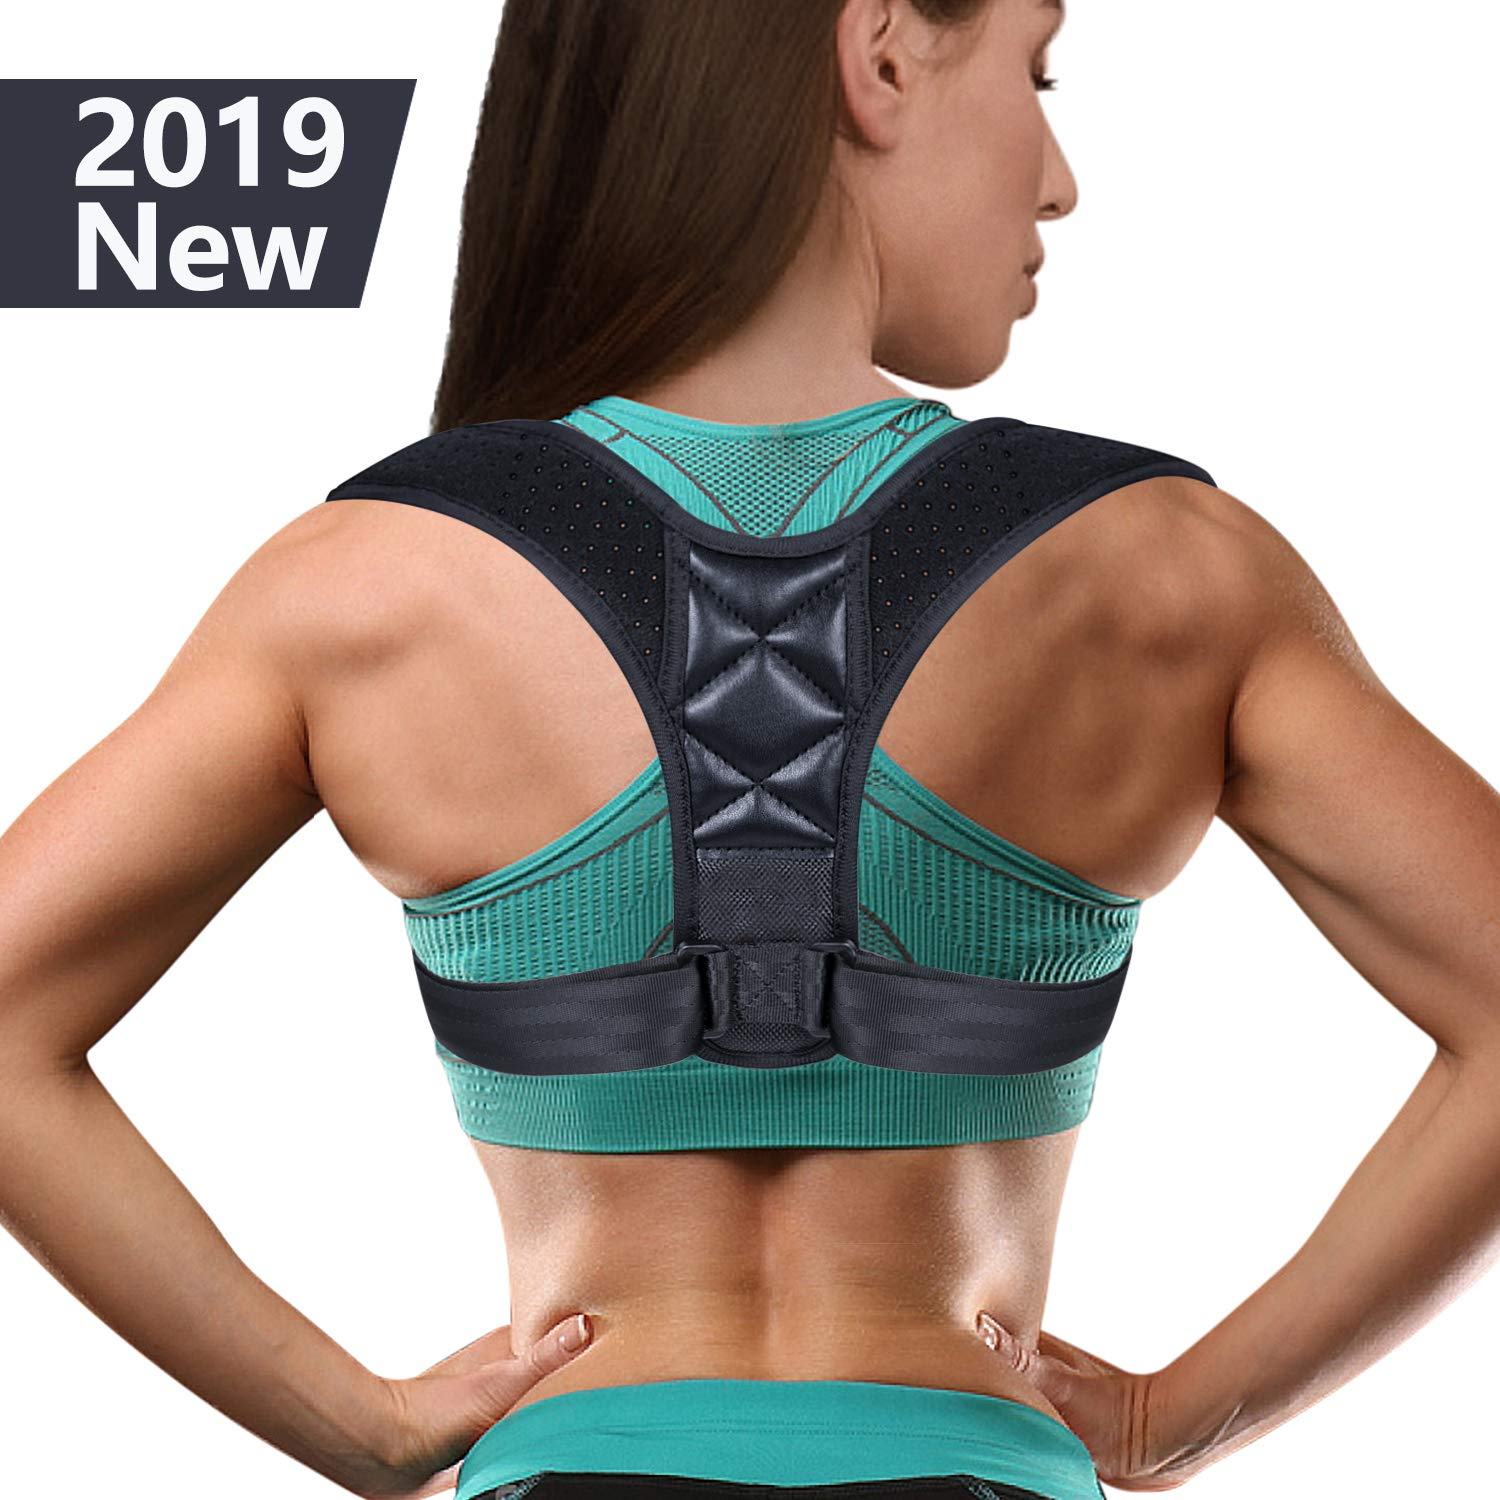 (2019 New) Posture Corrector for Women Men - Posture Brace with Magic Sticker Adjustable Back Straightener, Comfortable Upper Clavicle Support Device for Thoracic Kyphosis and Back Pain Relief